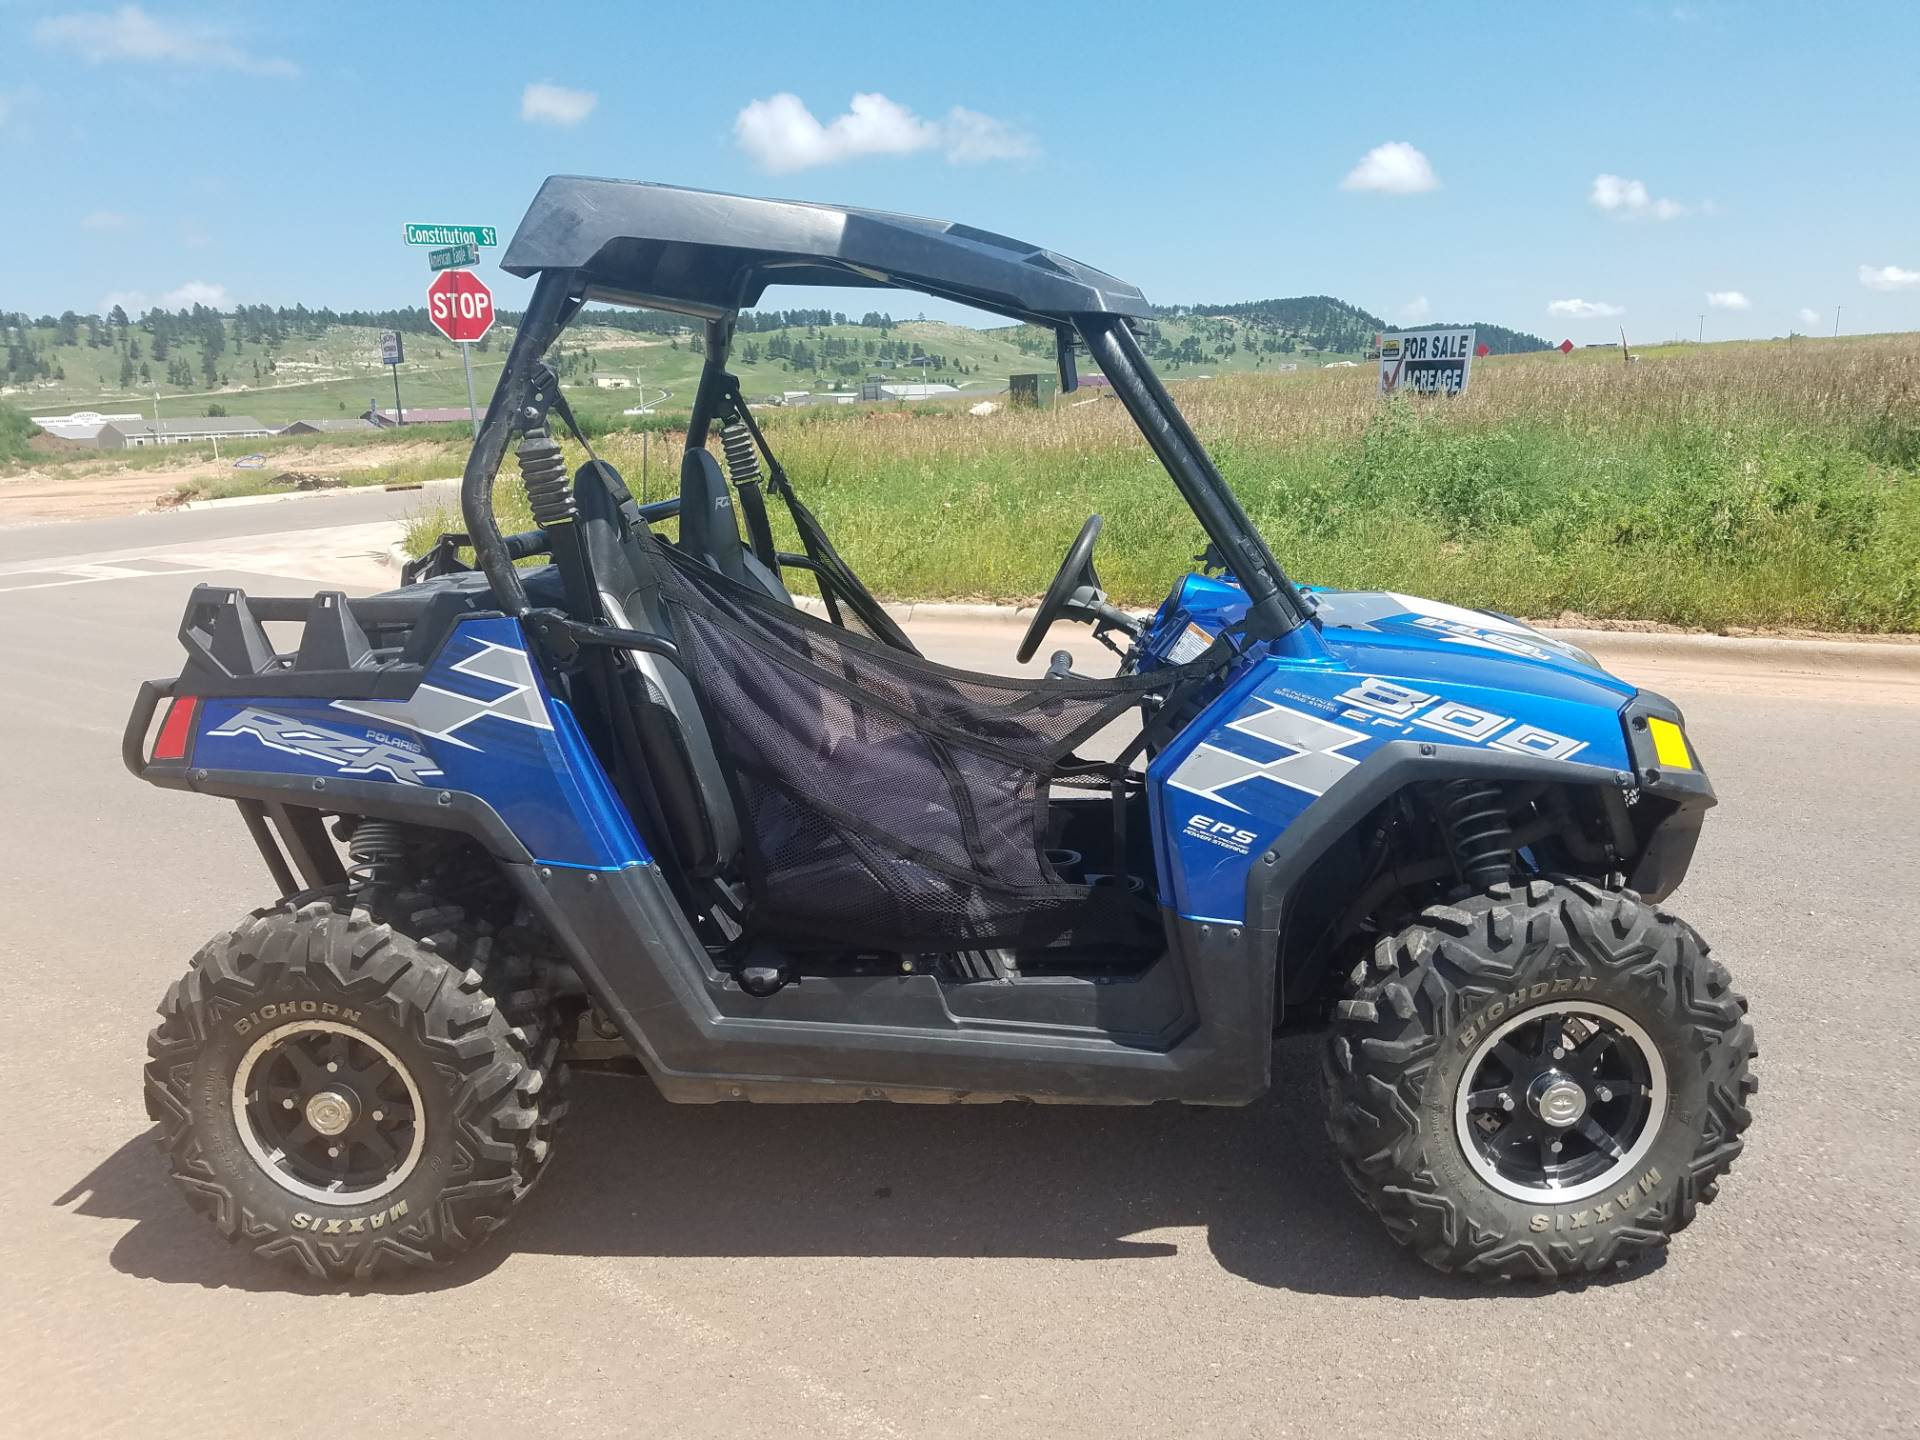 hight resolution of 2013 polaris rzr 800 eps le in rapid city south dakota